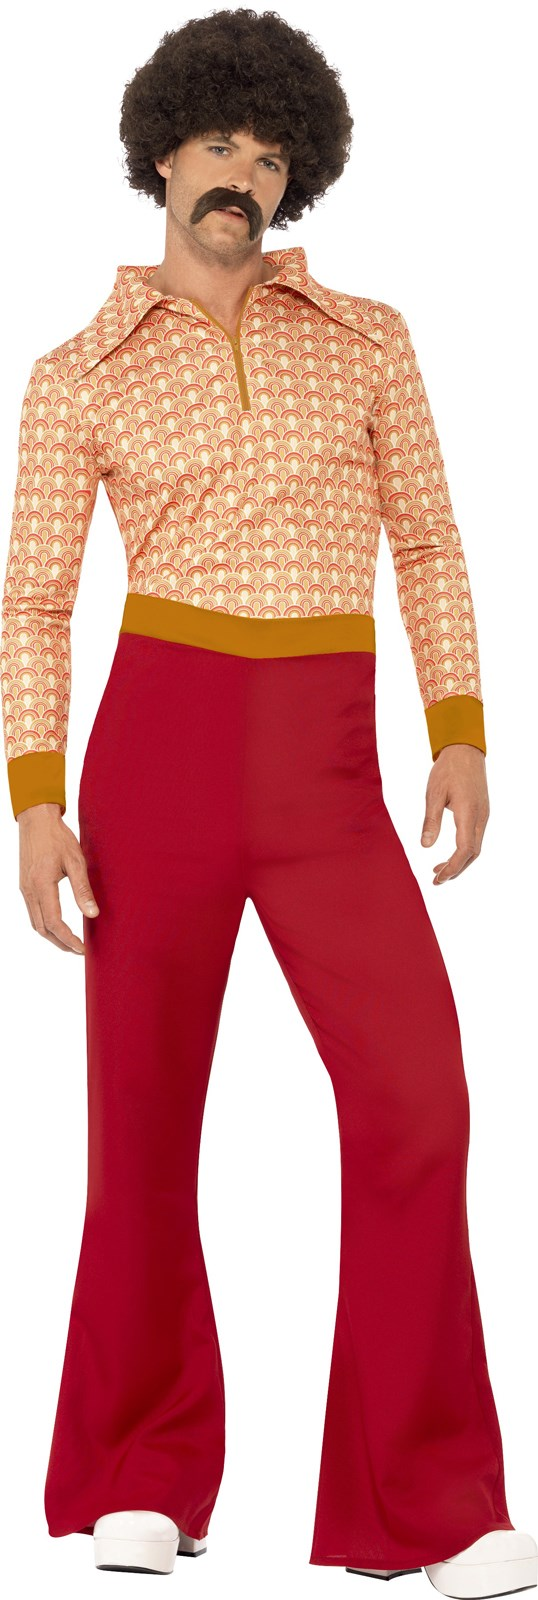 Mens Authentic 70s Guy Costume